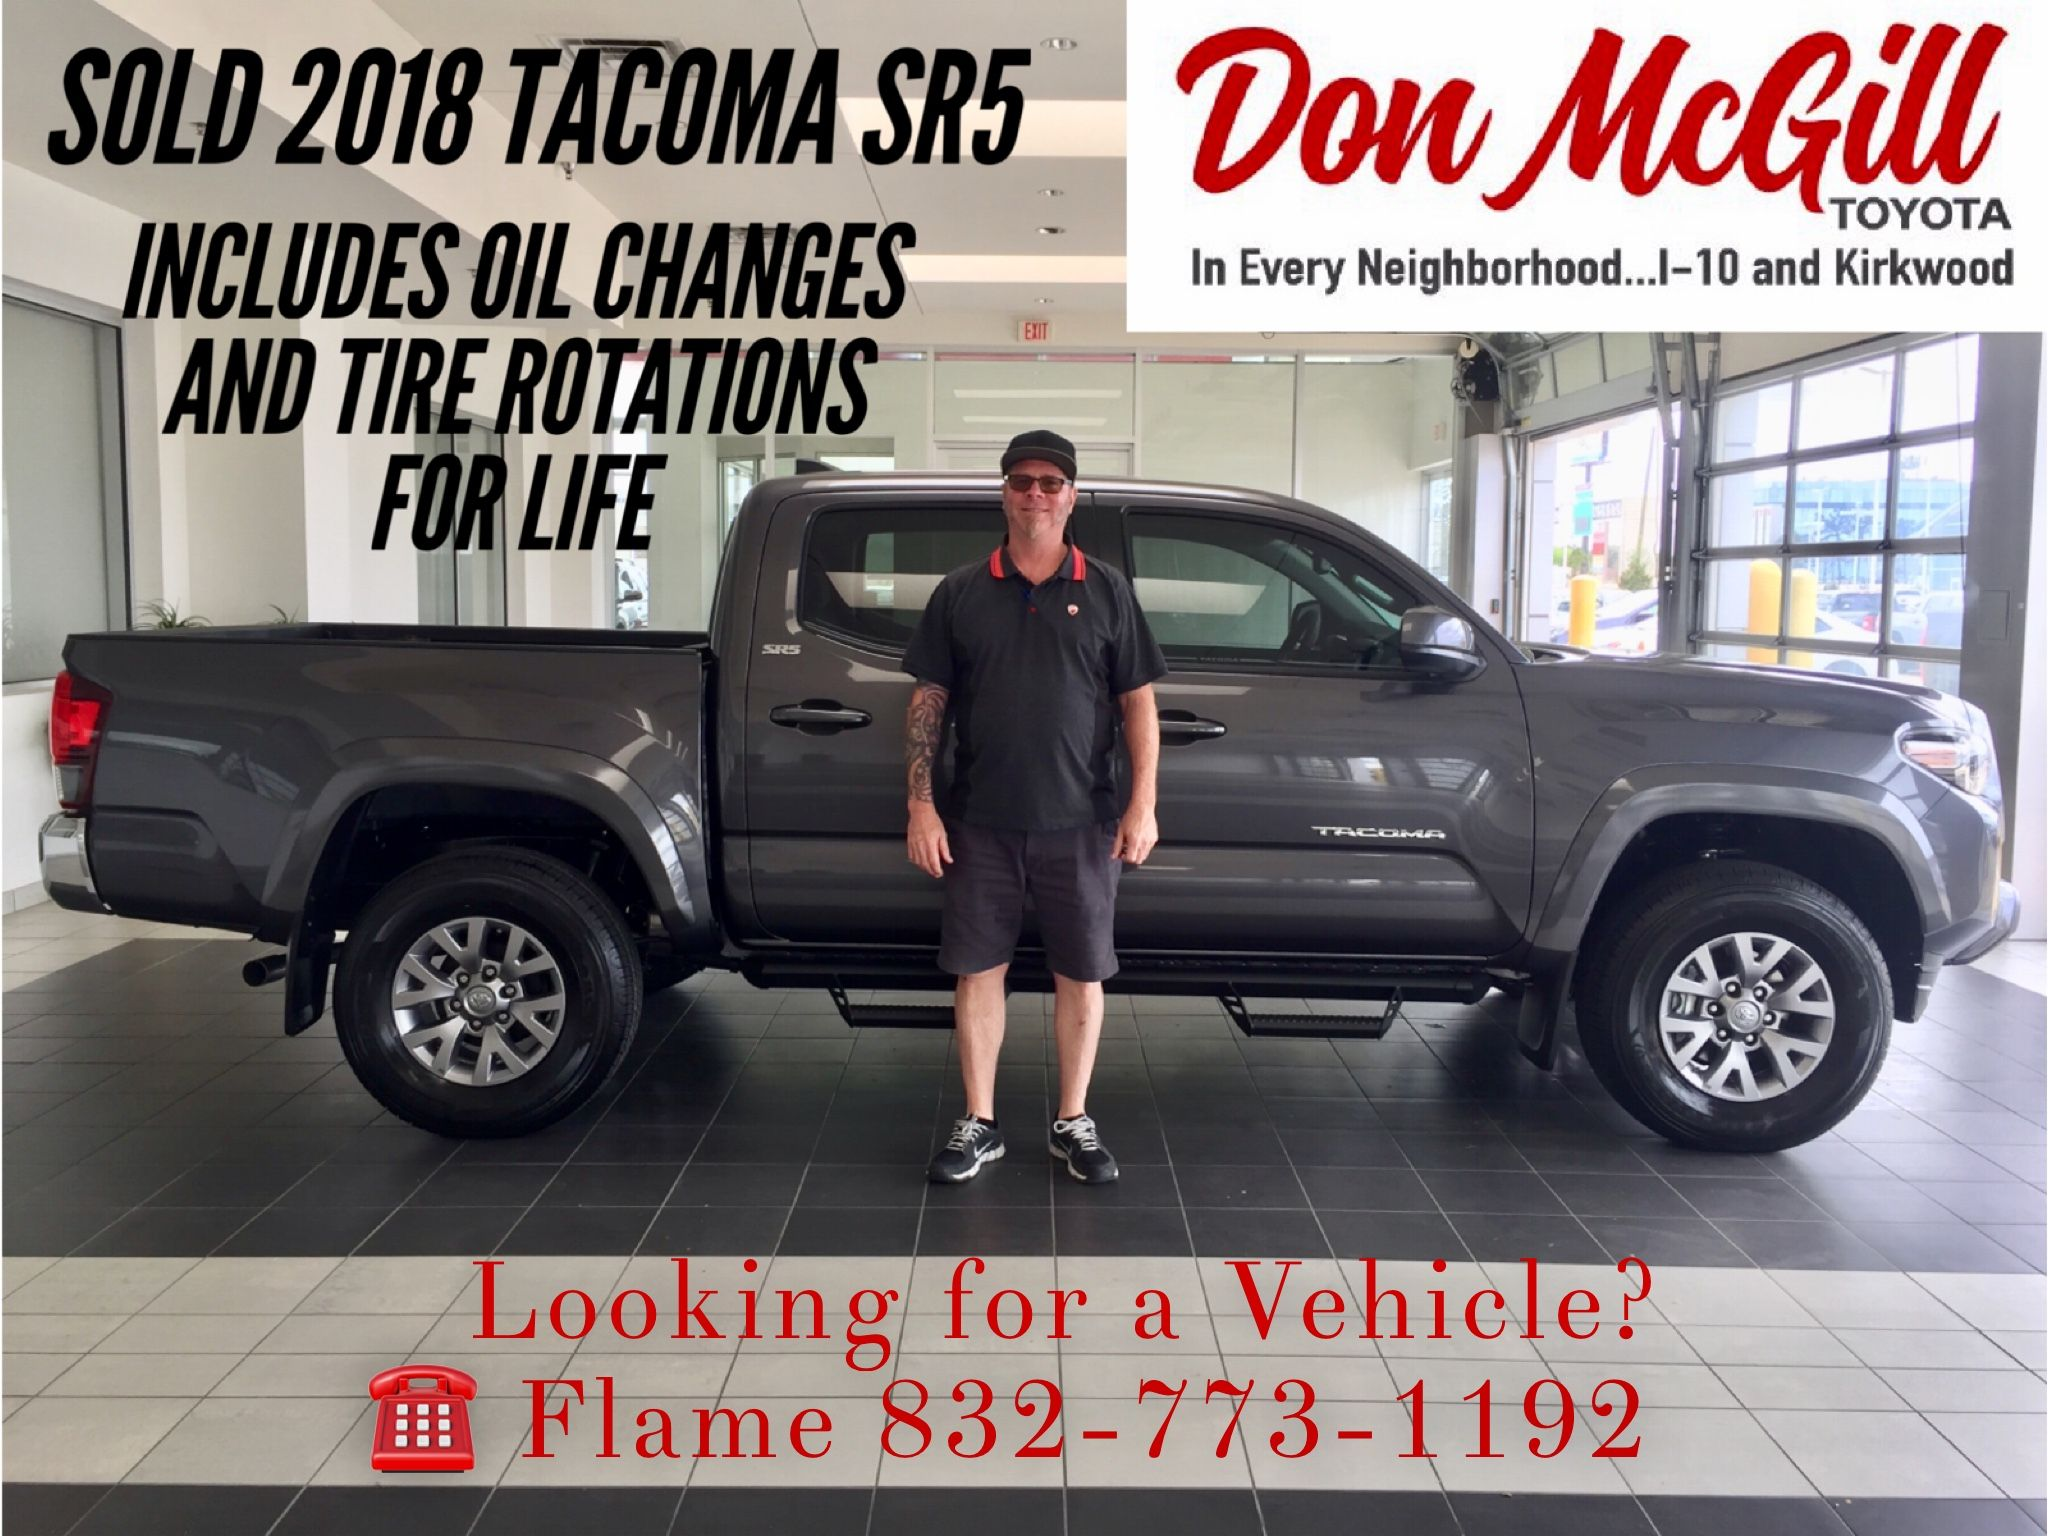 High Quality Don McGill Toyota 11800 Katy Freeway Houston, TX 77079 Call Or Text Flame @  832